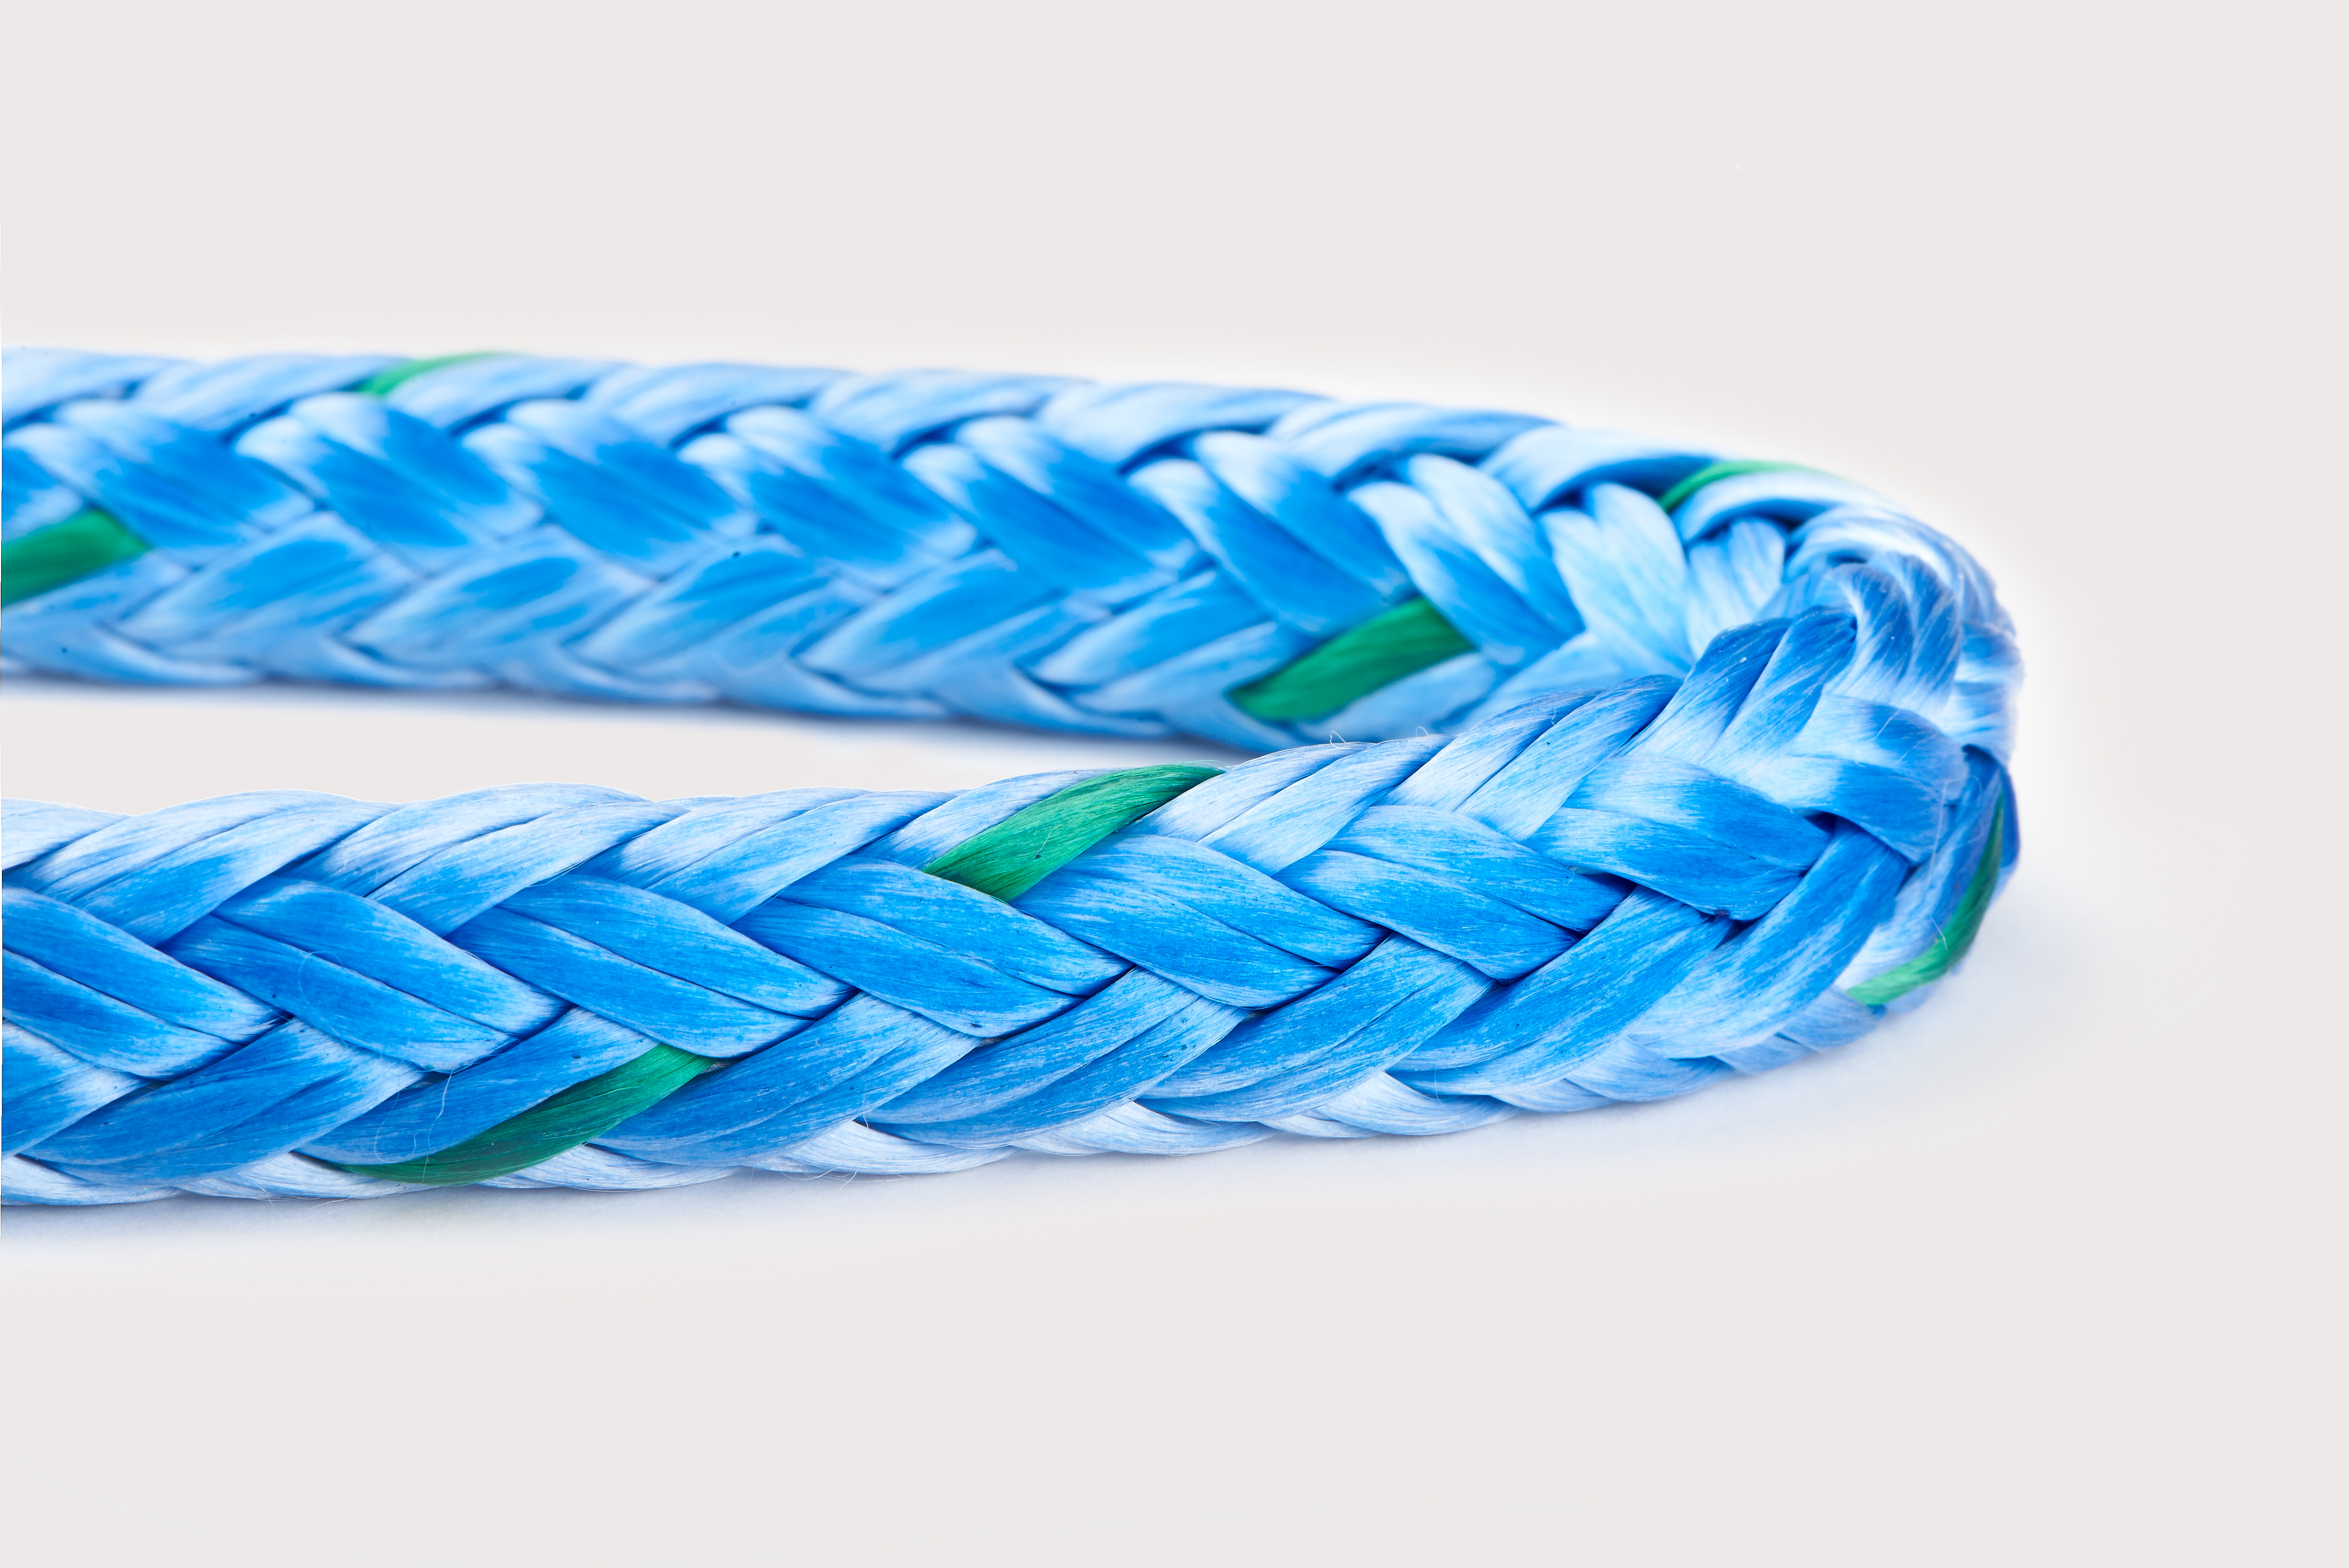 Orion-Cordage-Esterplex 12-Strand Polyester (Two-In-Train)-Blue I Green-Curved209.jpg